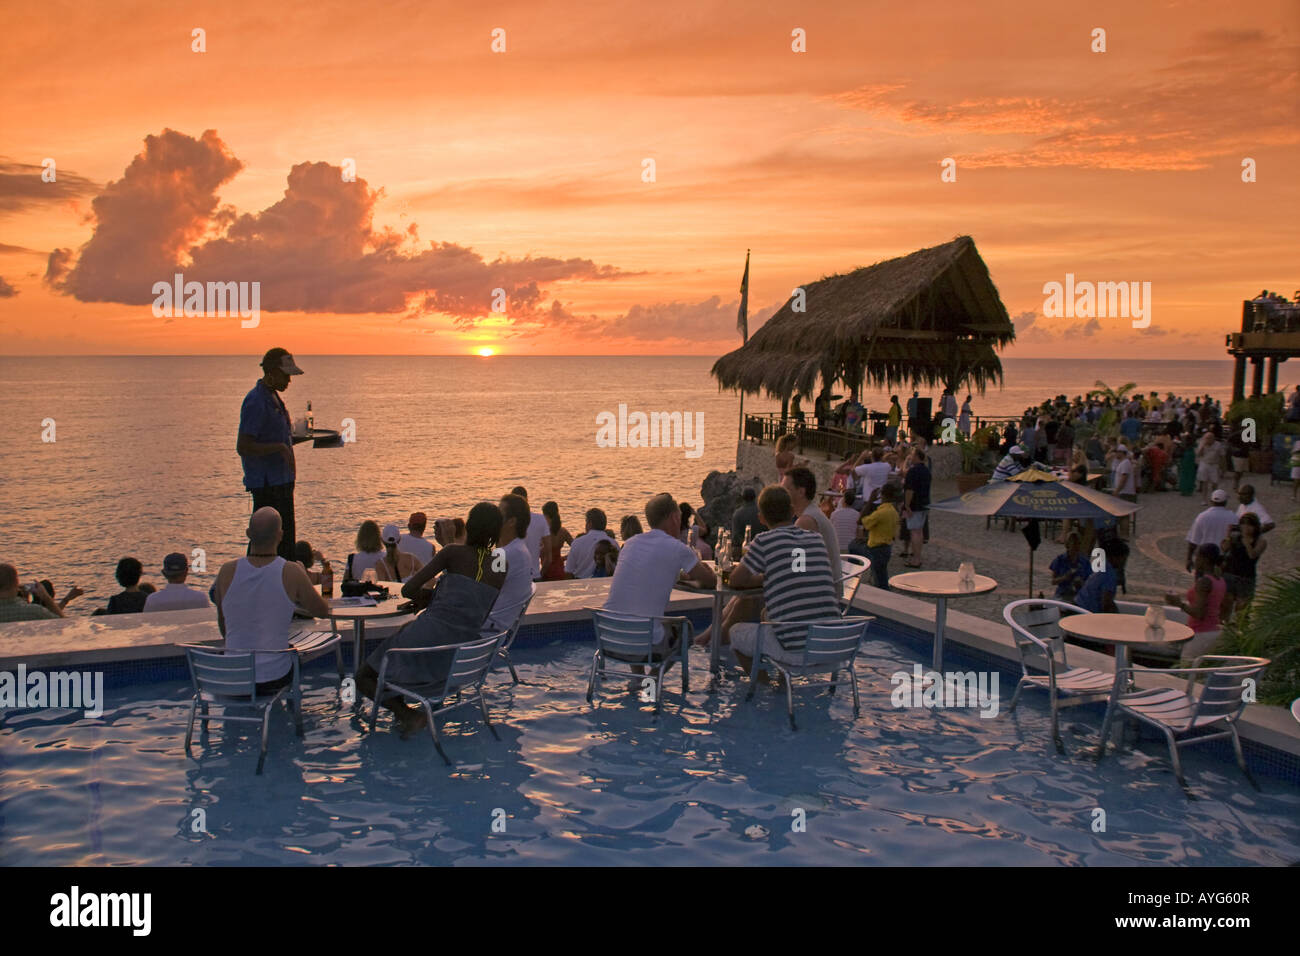 Jamaica Negril Ricks Cafe Open air Pool Bar Viewpoint at Sunset - Stock Image